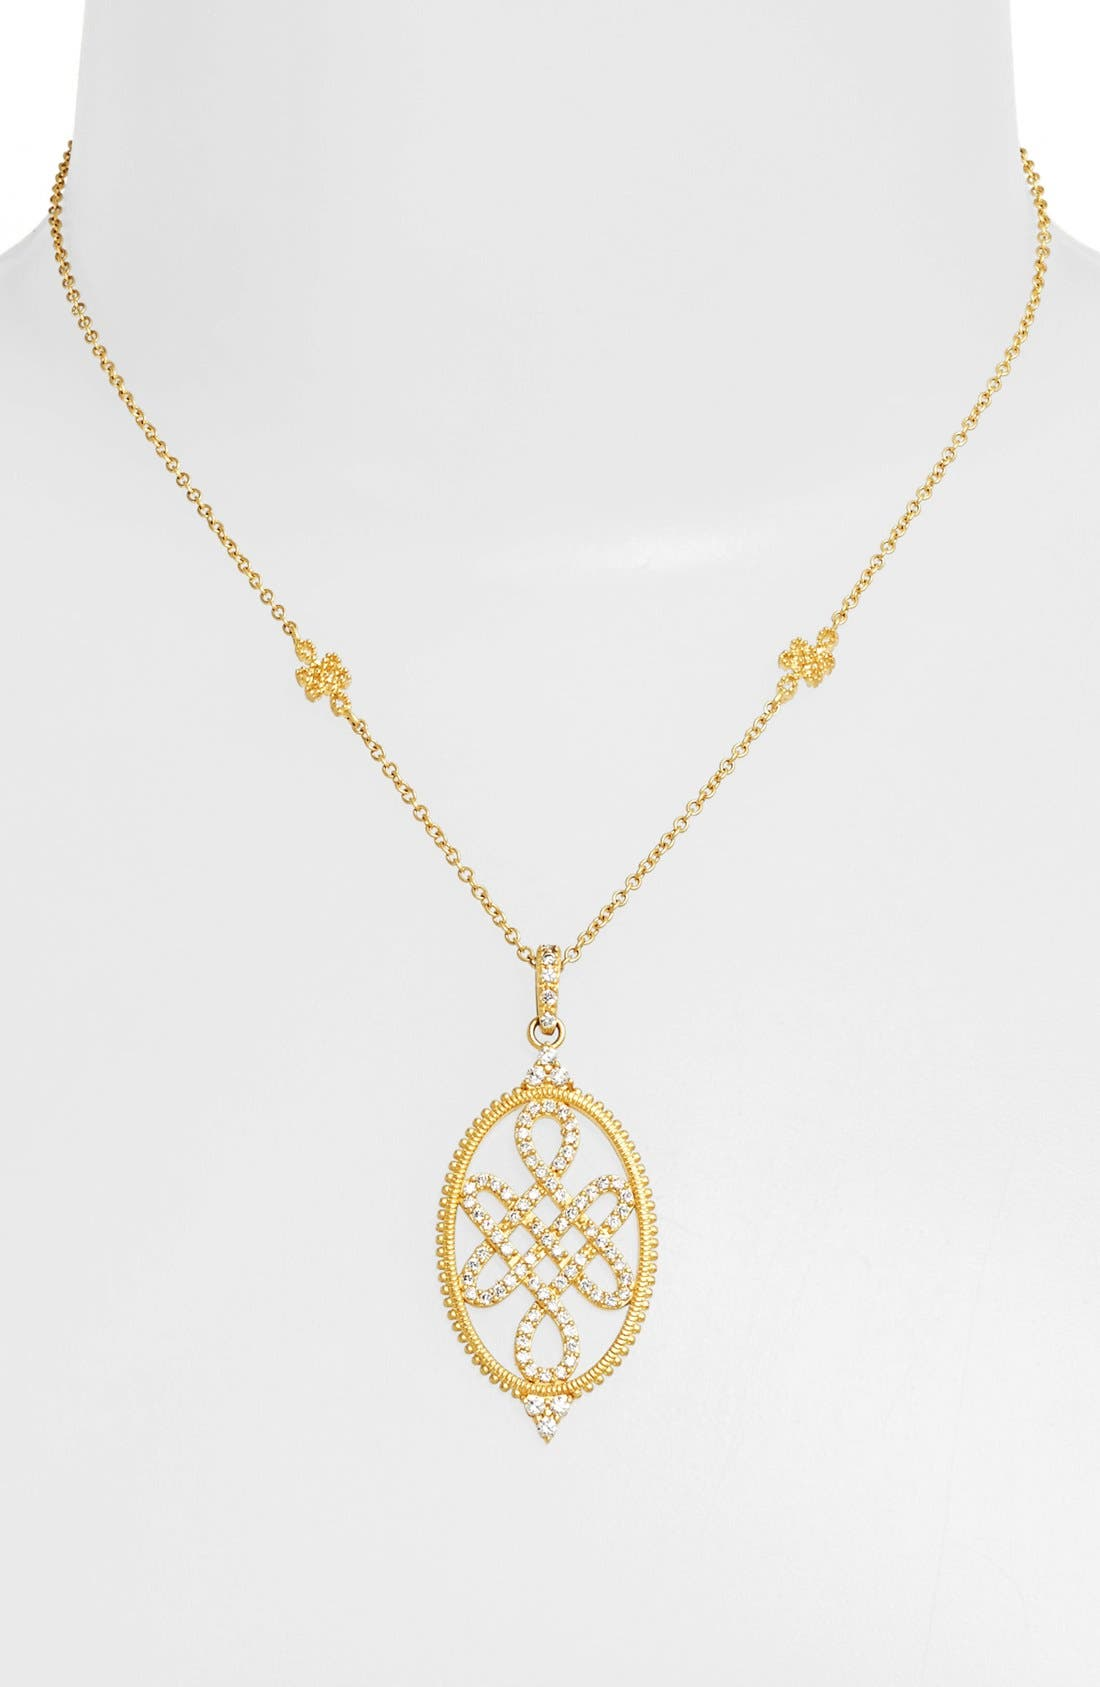 Alternate Image 1 Selected - FREIDA ROTHMAN 'Gramercy' Love Knot Pendant Necklace